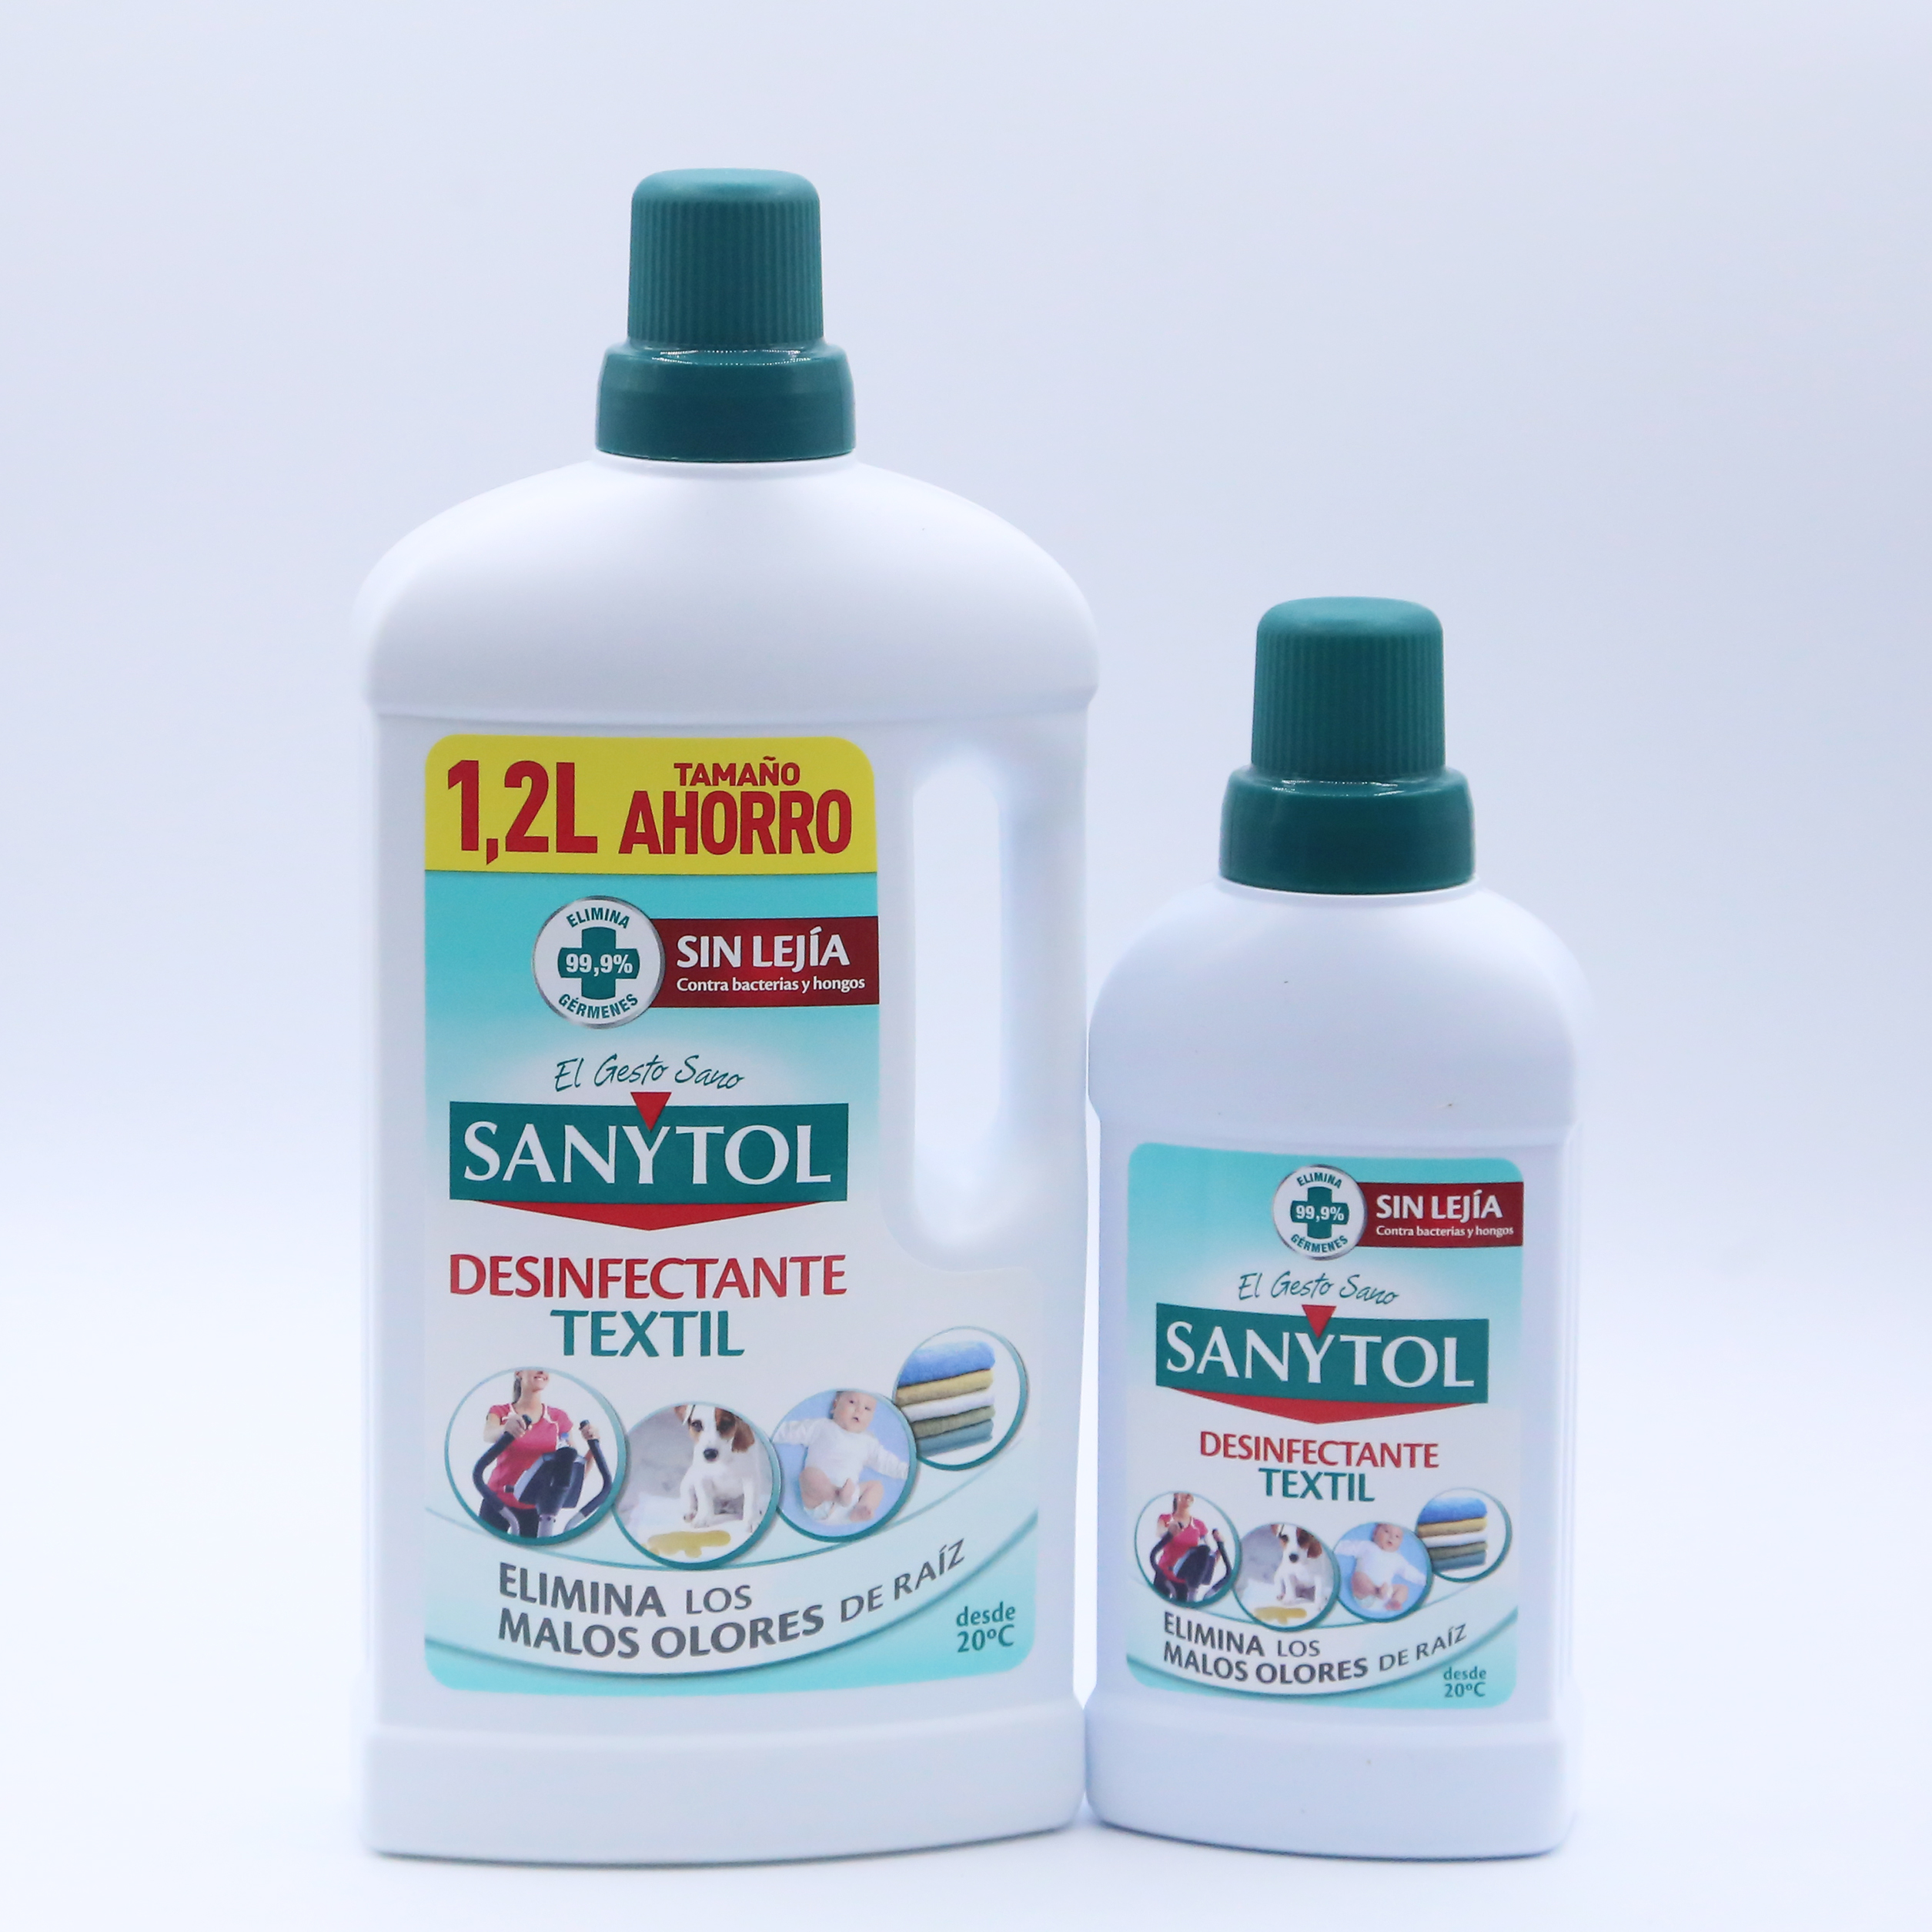 1ud Disinfectant Textile Fabric Removes Bad Smells Root Without Bleach Anti Bacteria And Shrooms 1.2L 500ml